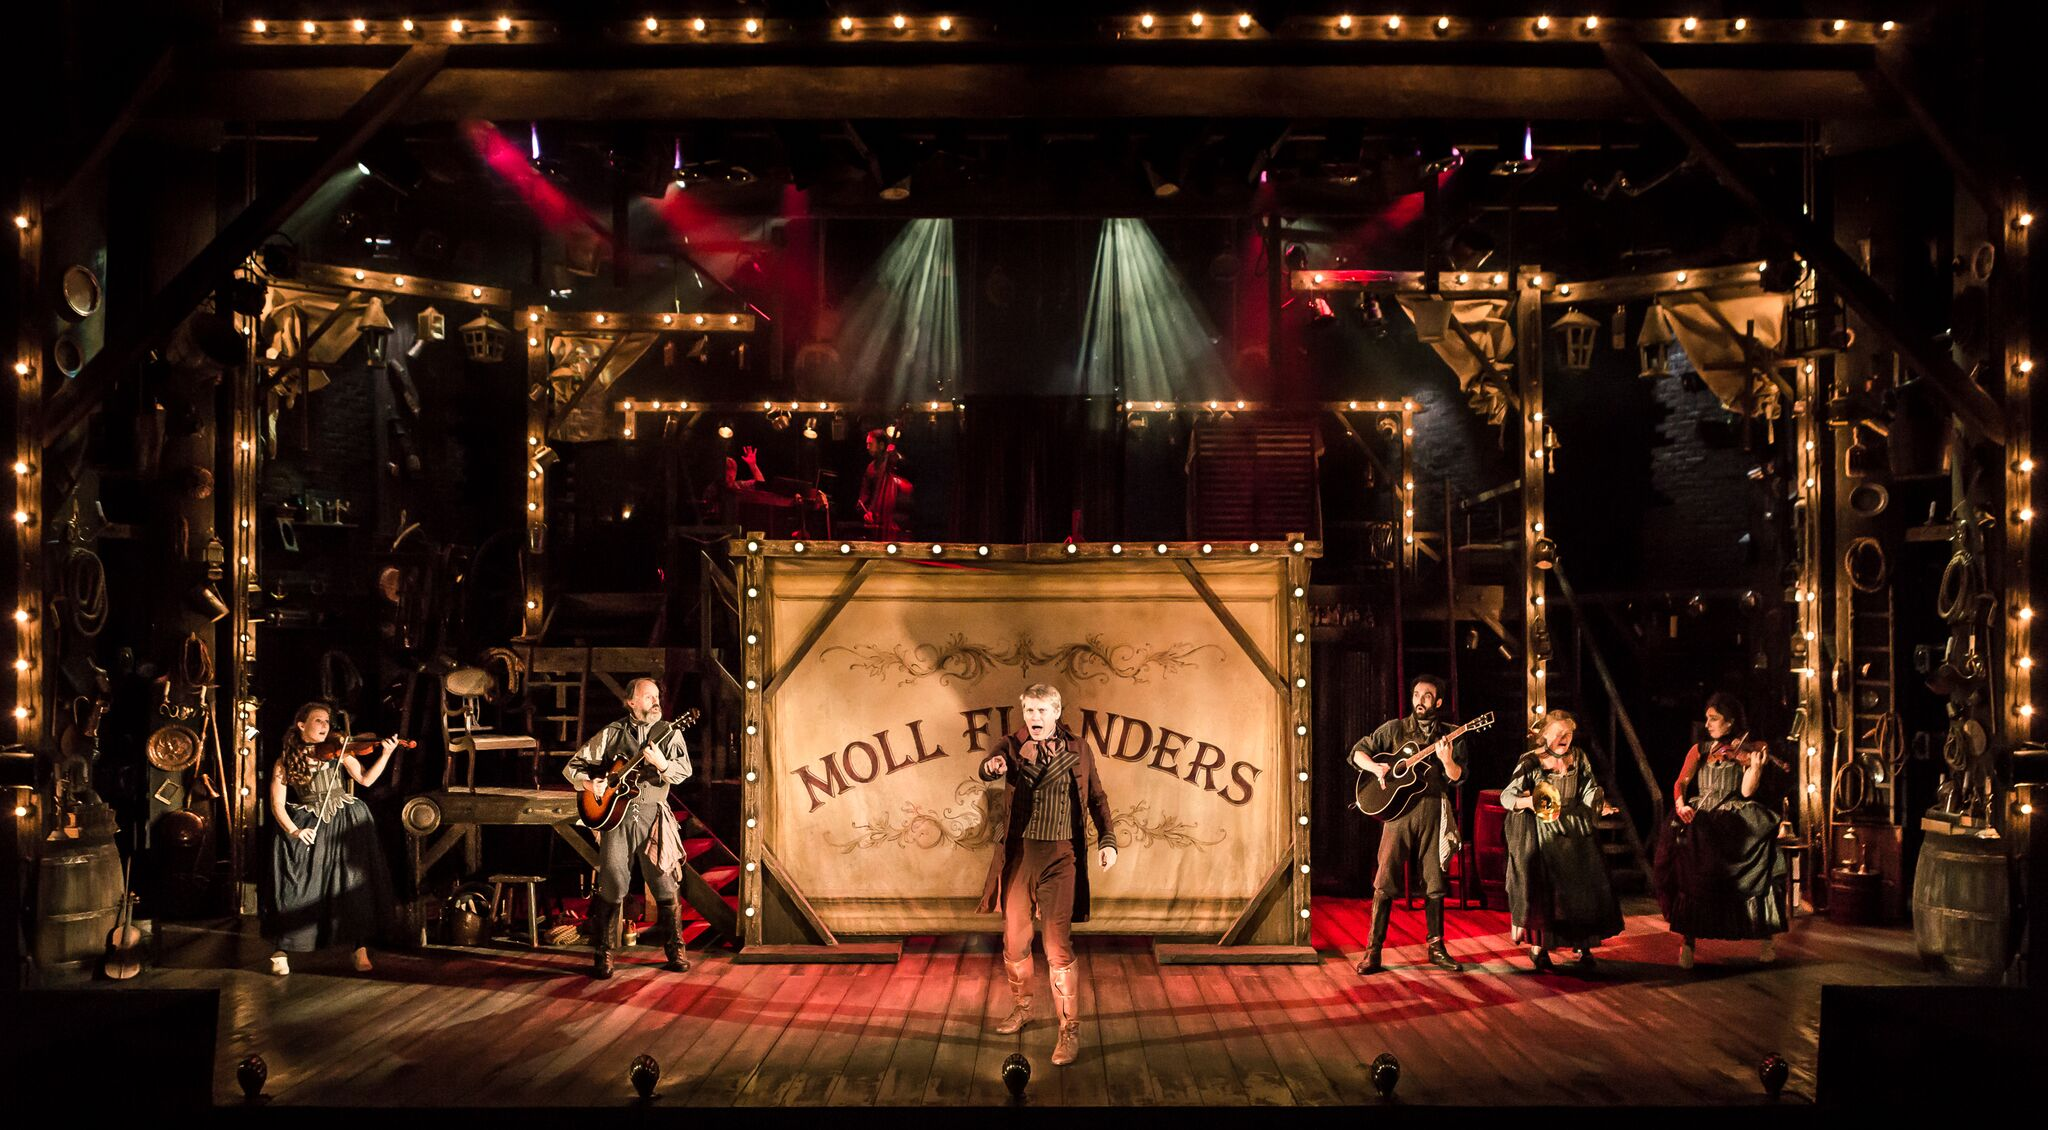 Photo shows full cast of stage, with the character 'Daniel DeFoe' setting the scene. The light is a mixture of reds and oranges. Daniel is standing centre stage with the title 'Moll Flanders' behind him on a canvas.